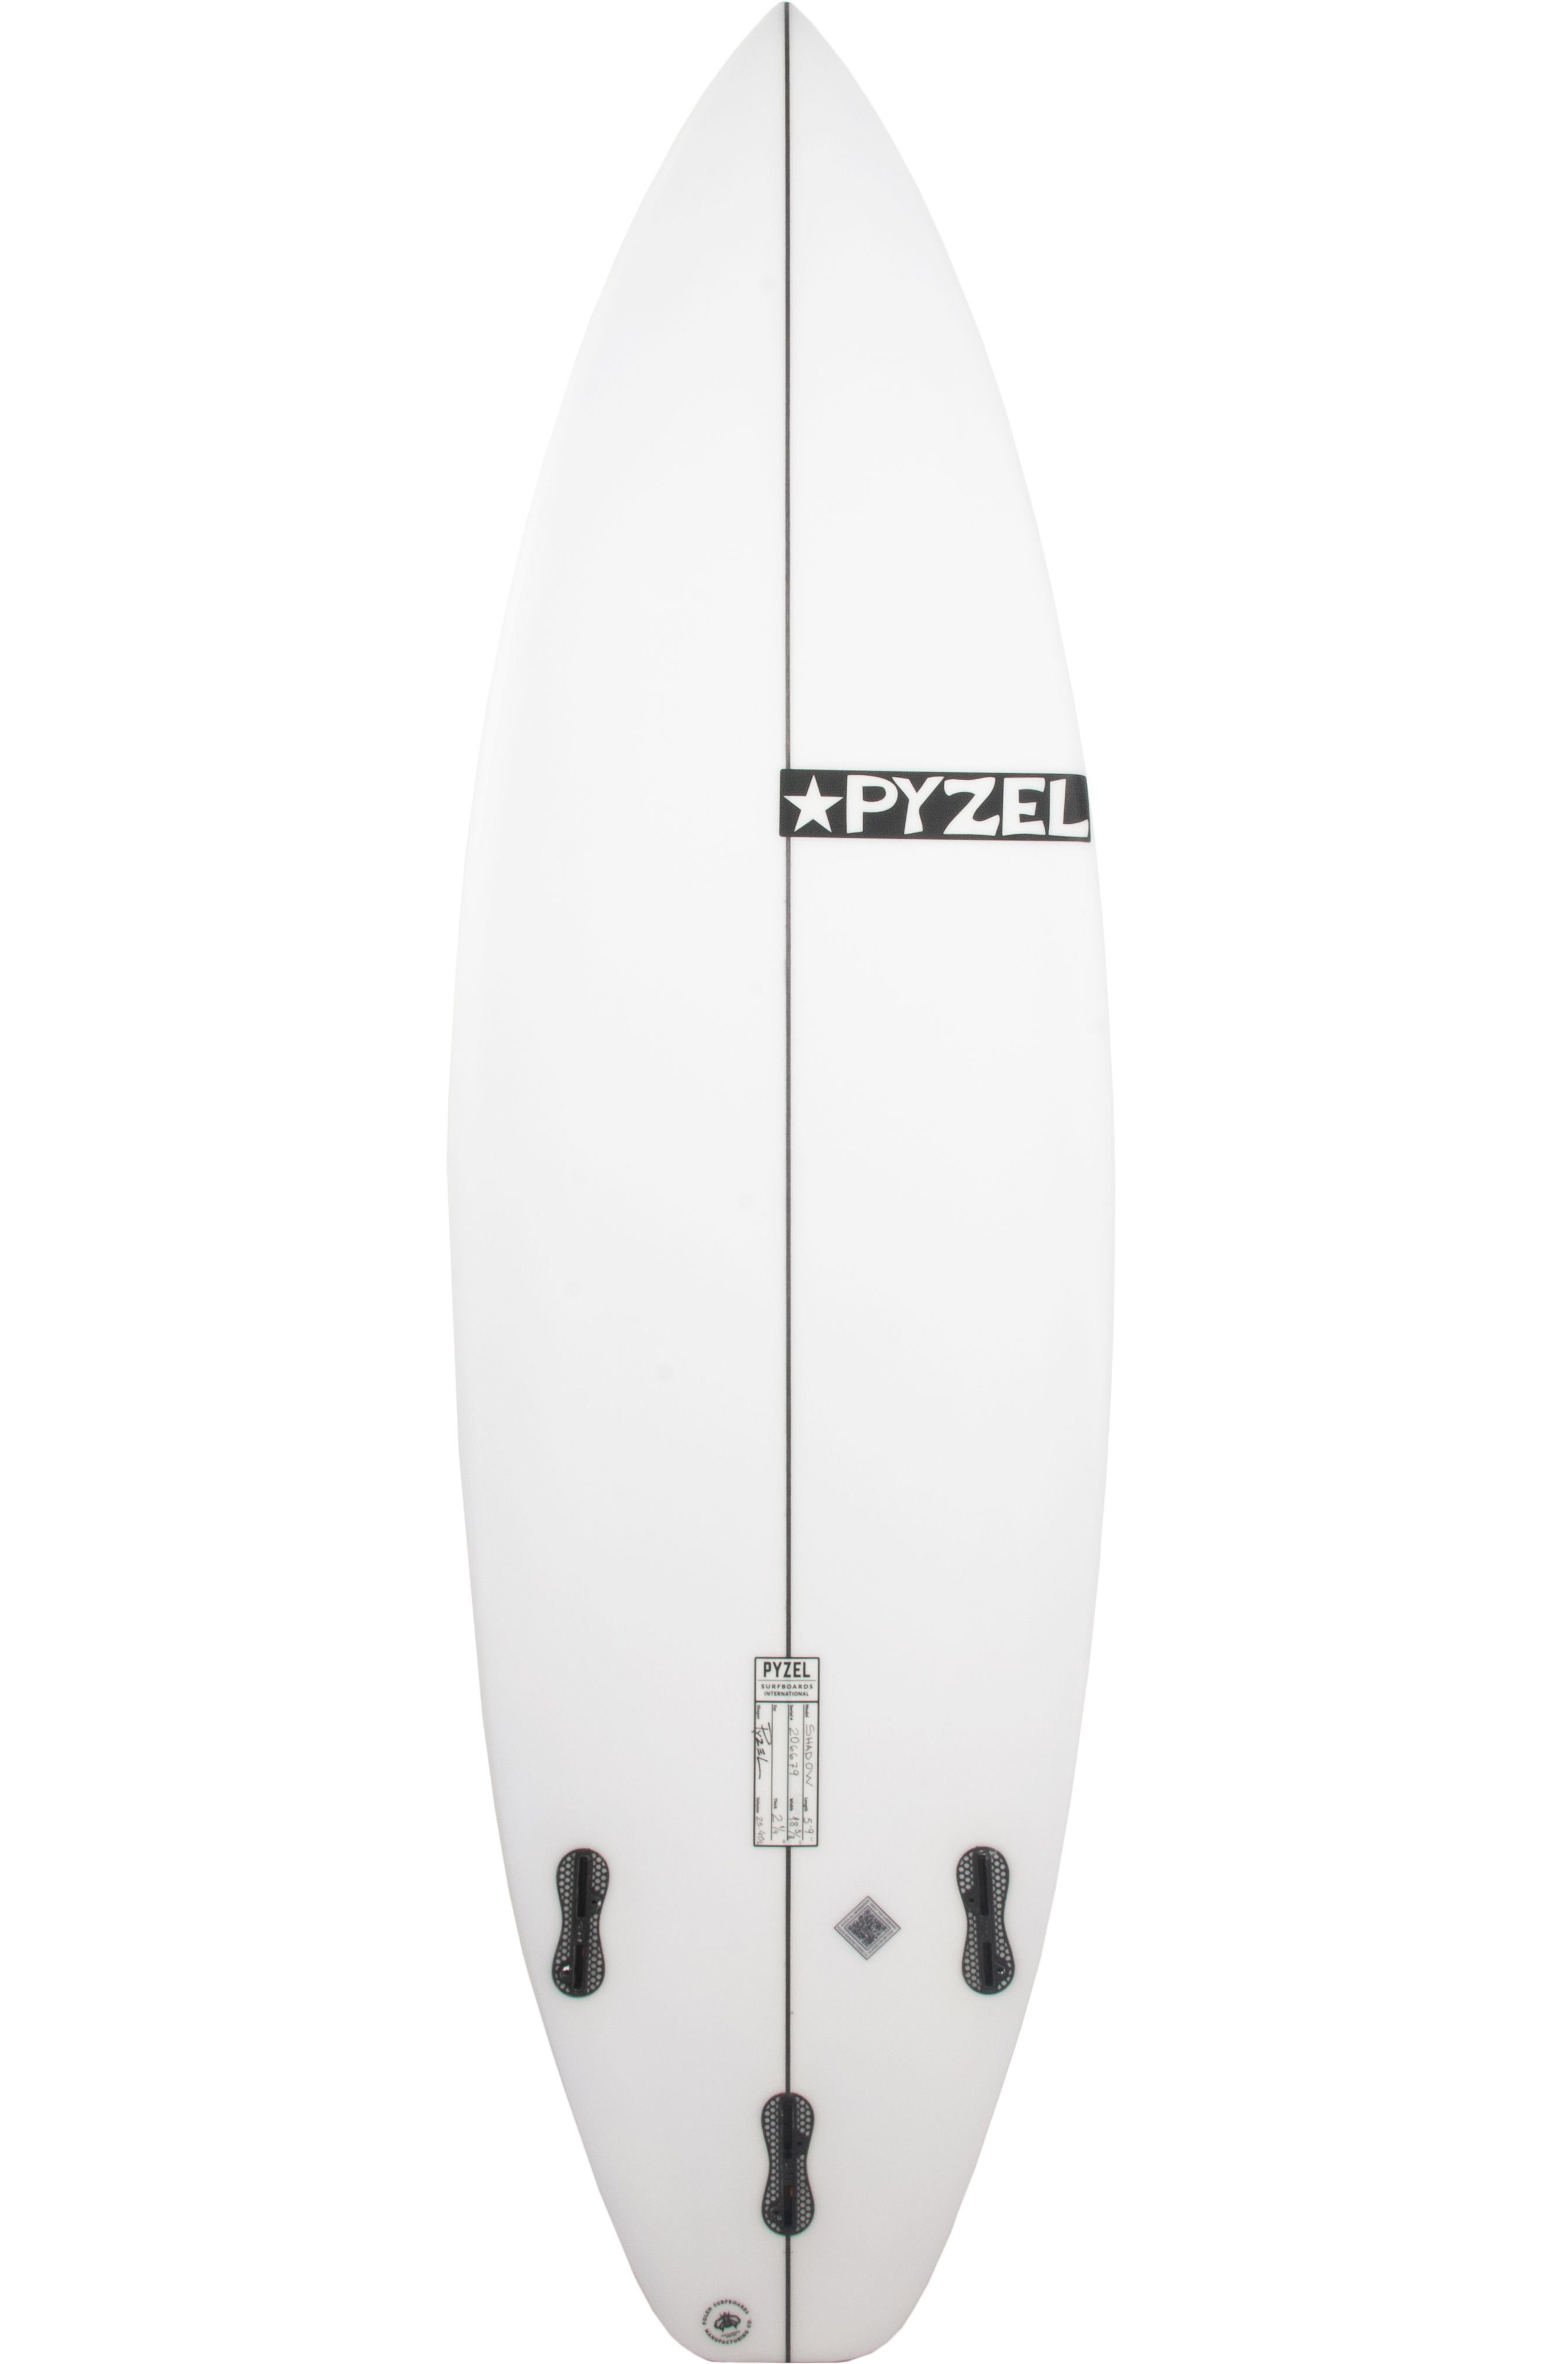 Prancha Surf Pyzel SHADOW 6'3 Squash Tail - White FCS II 6ft3